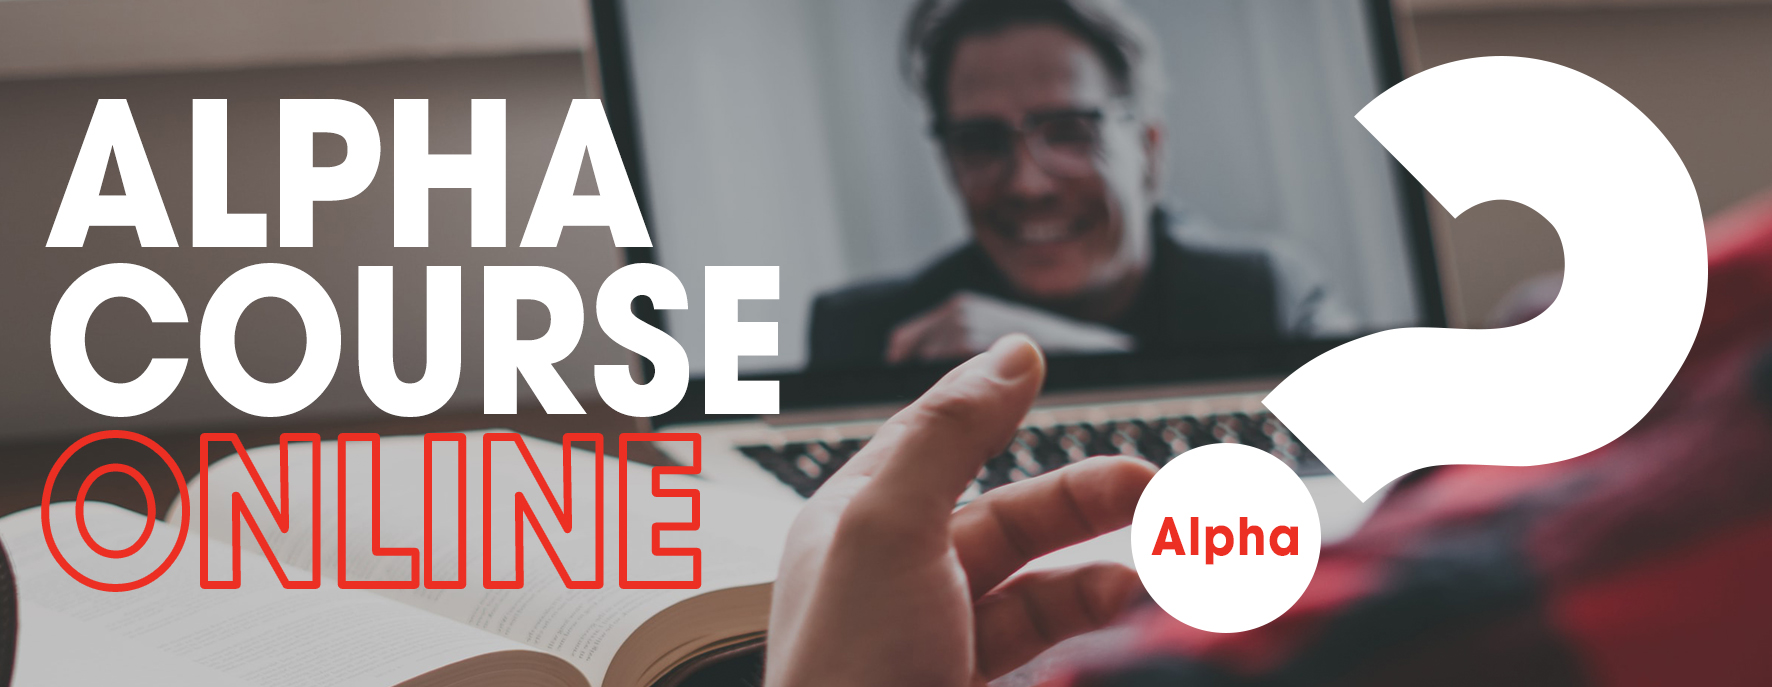 alpha-course-page-header-image